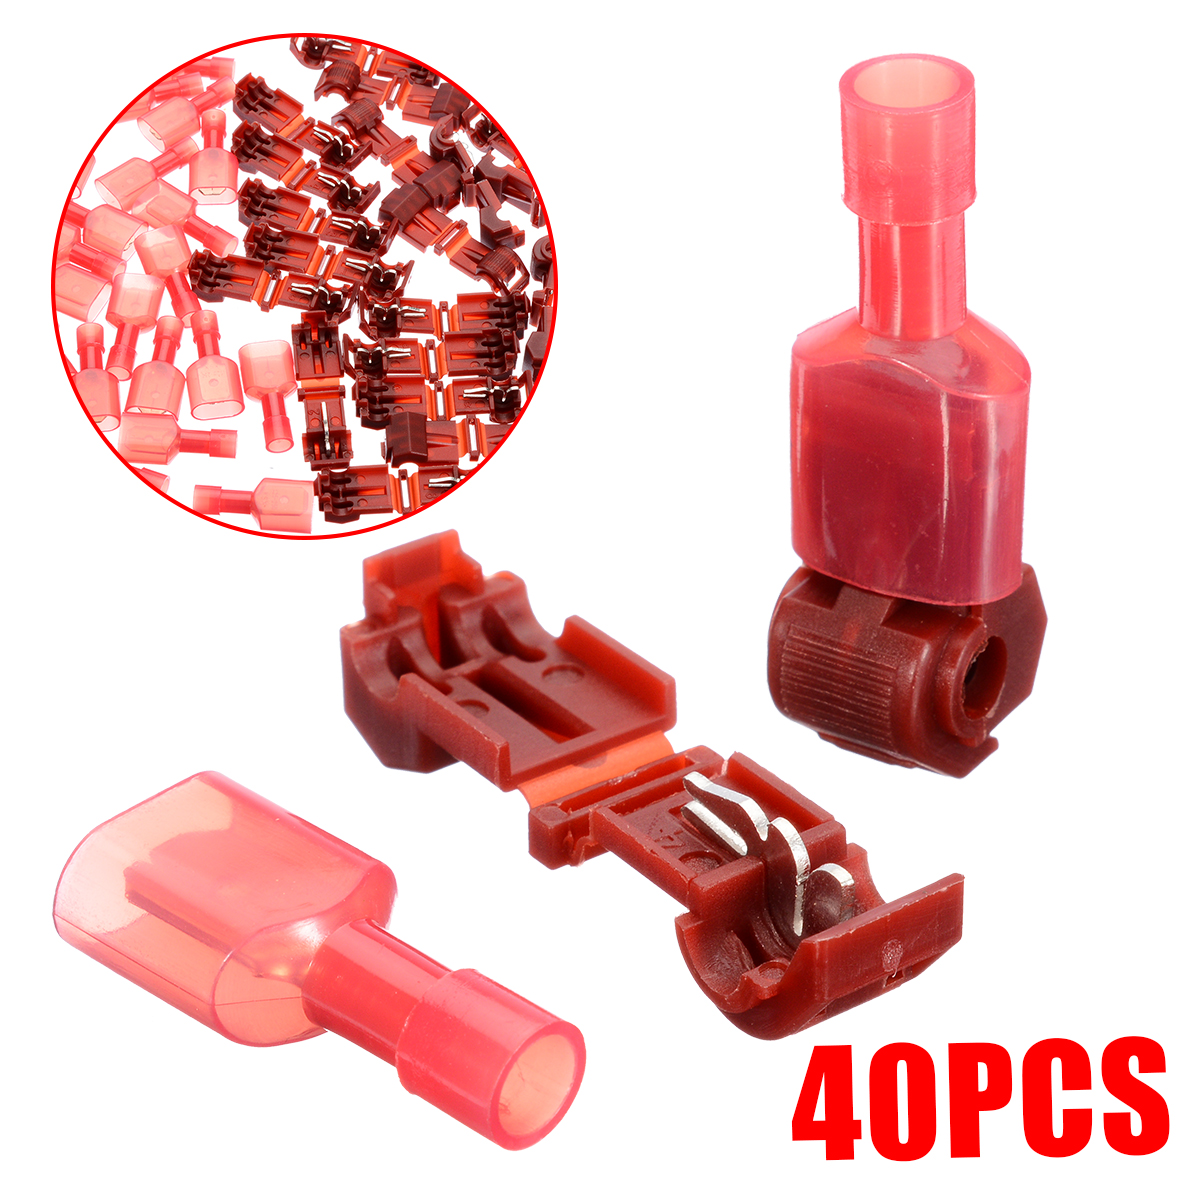 40Pcs Quick Splice Wire Connector Car Connecting Card Red T-Taps & Male Insulated Quick Splice Lock Cable Terminals Connectors